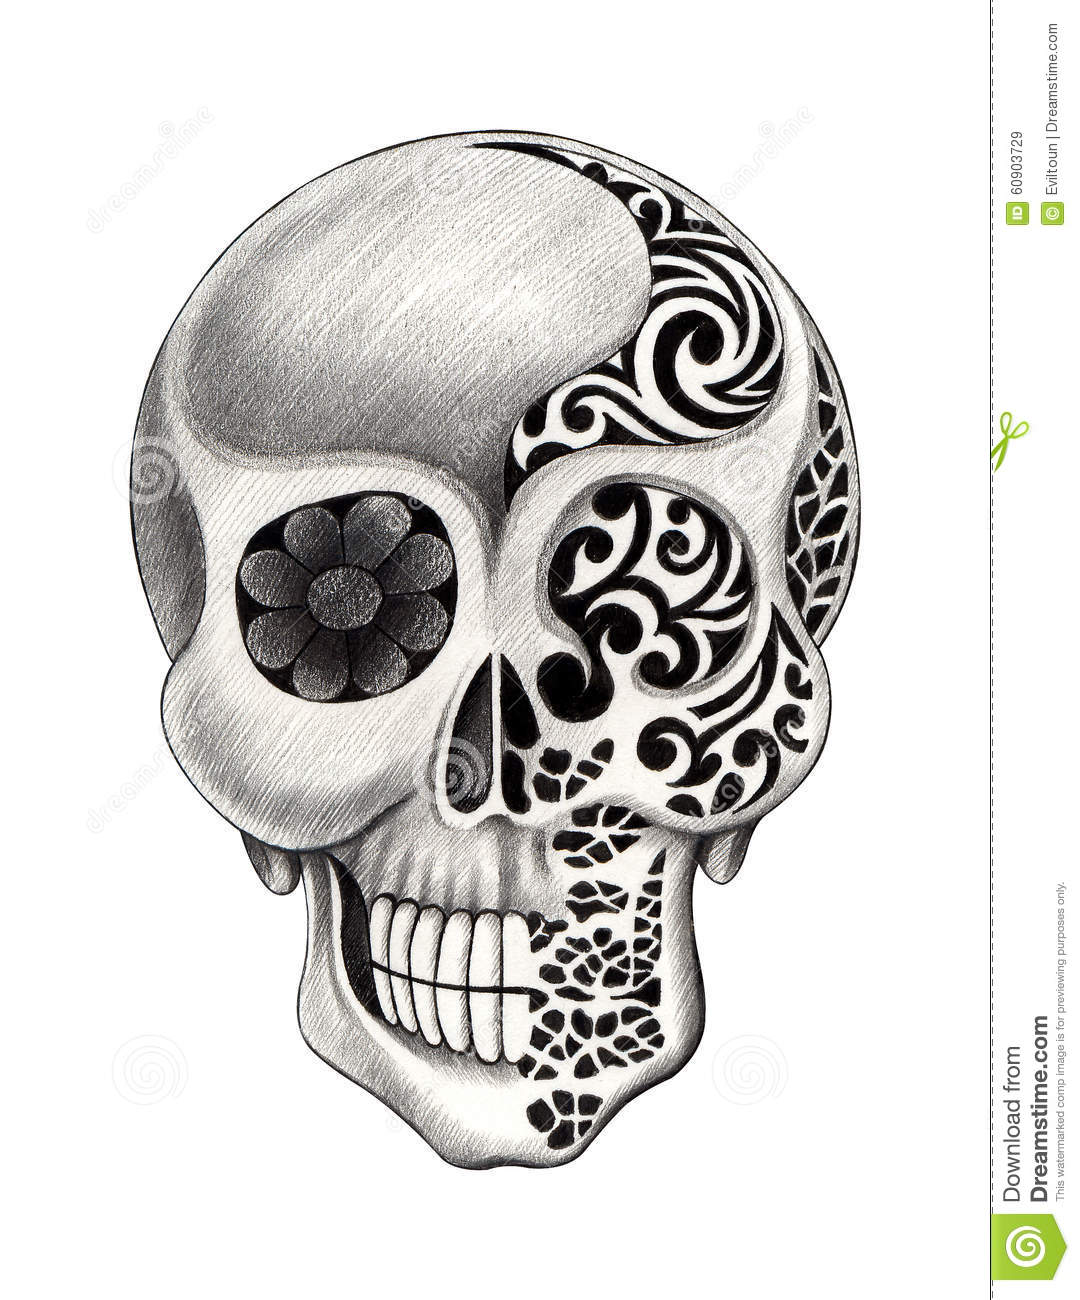 Skull tattoo designs free images for tatouage for Pictures of skull tattoos